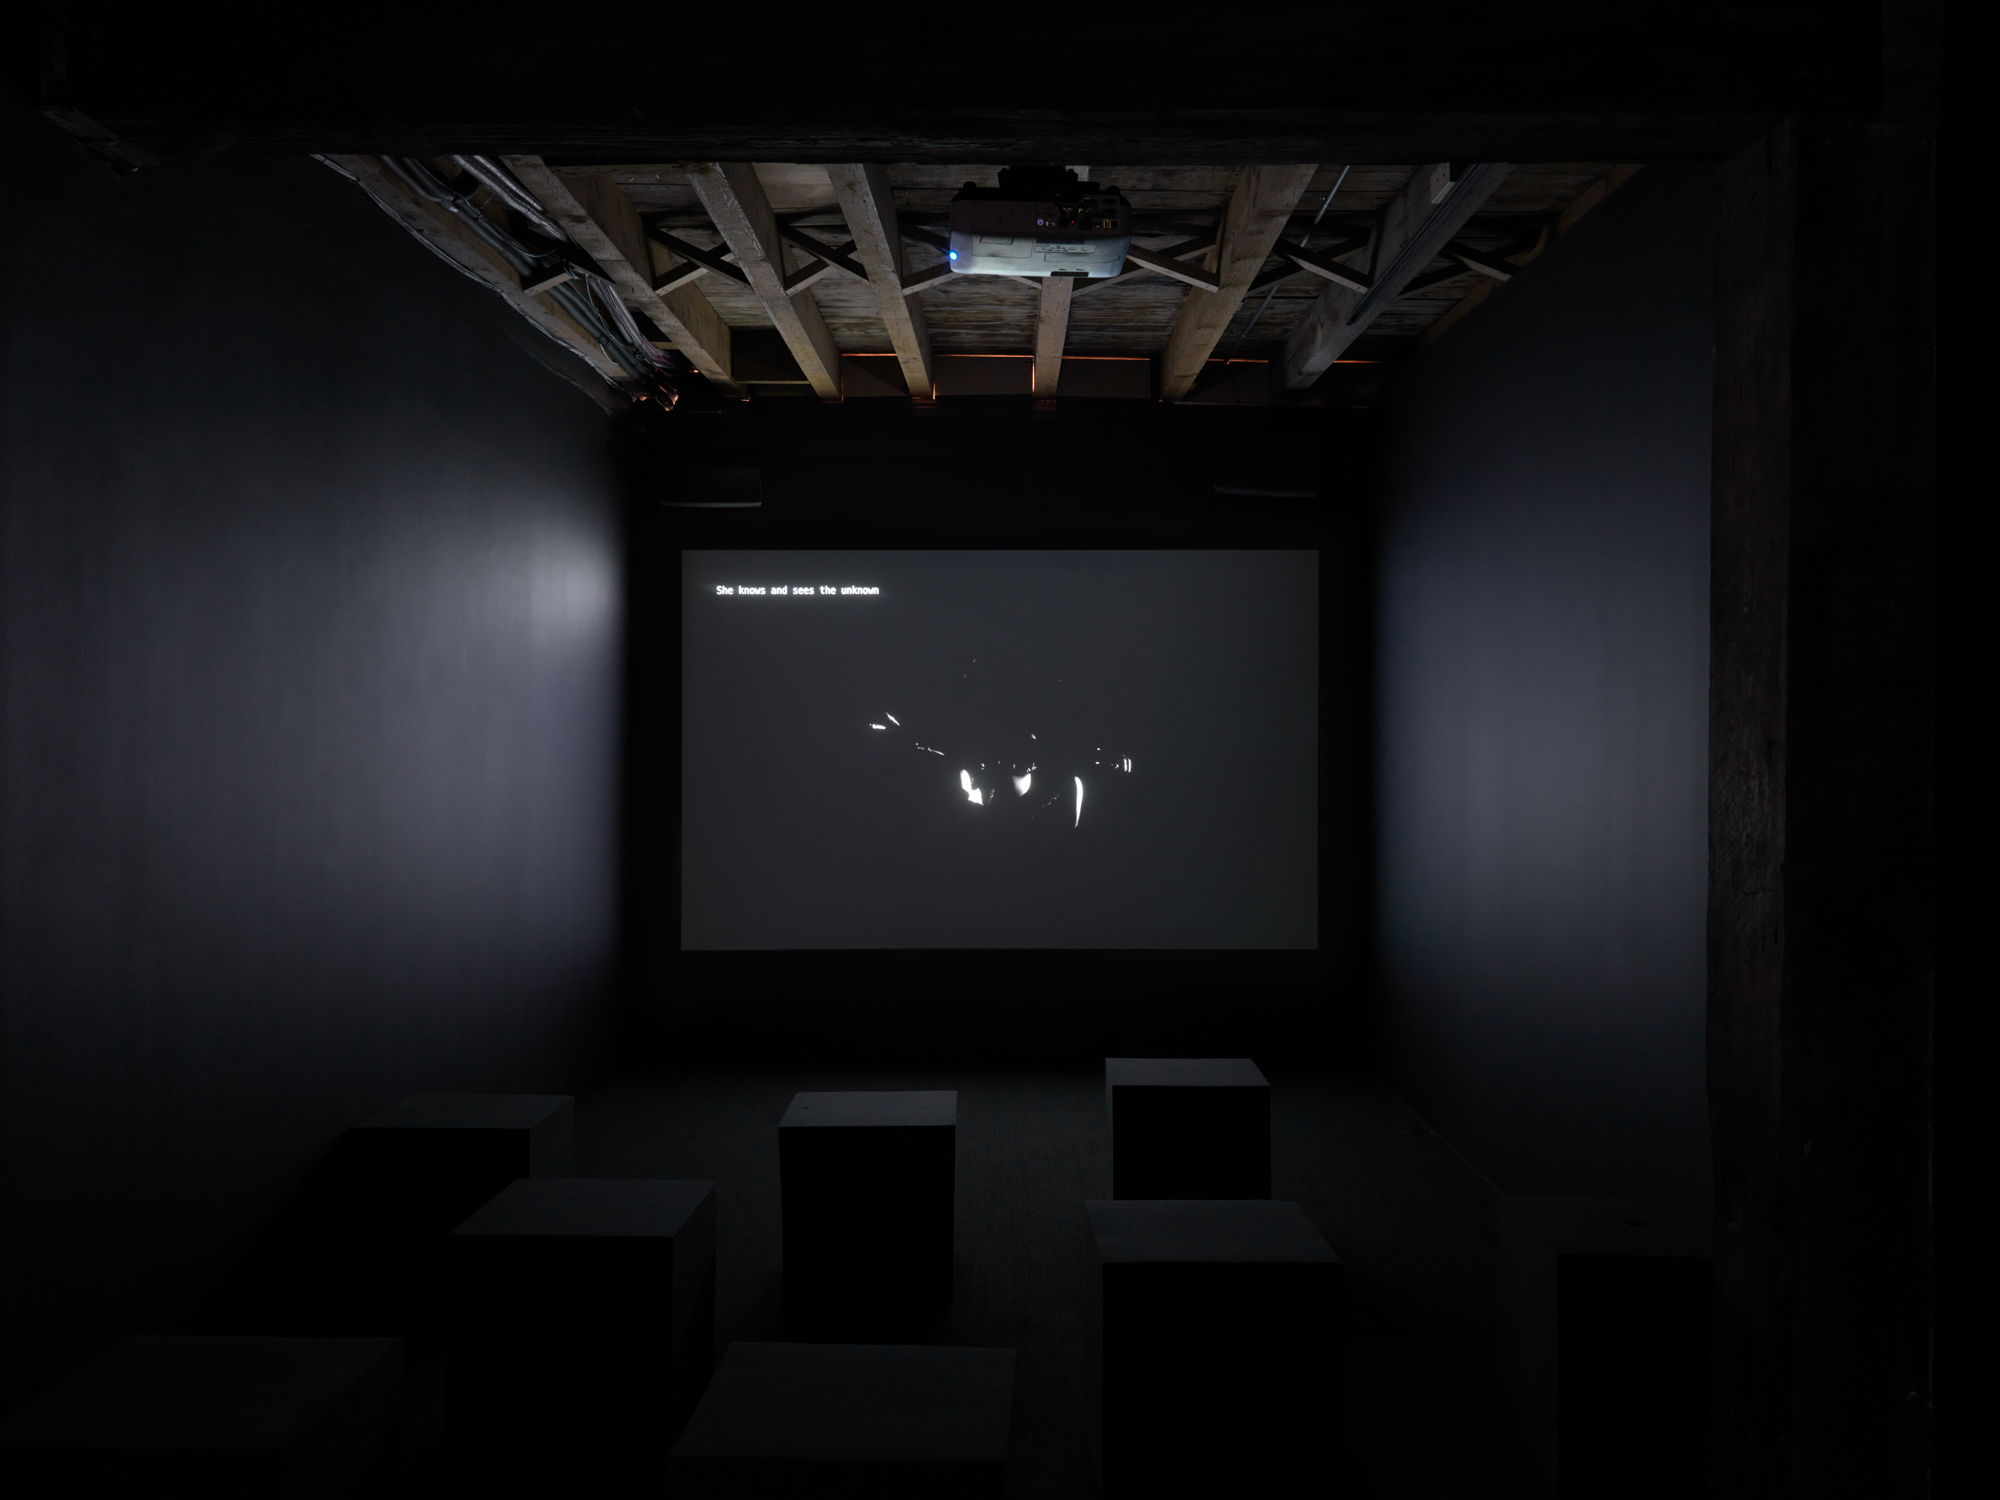 Morehshin Allahyari video in  Refiguring Binaries  at Pioneer Works, New York